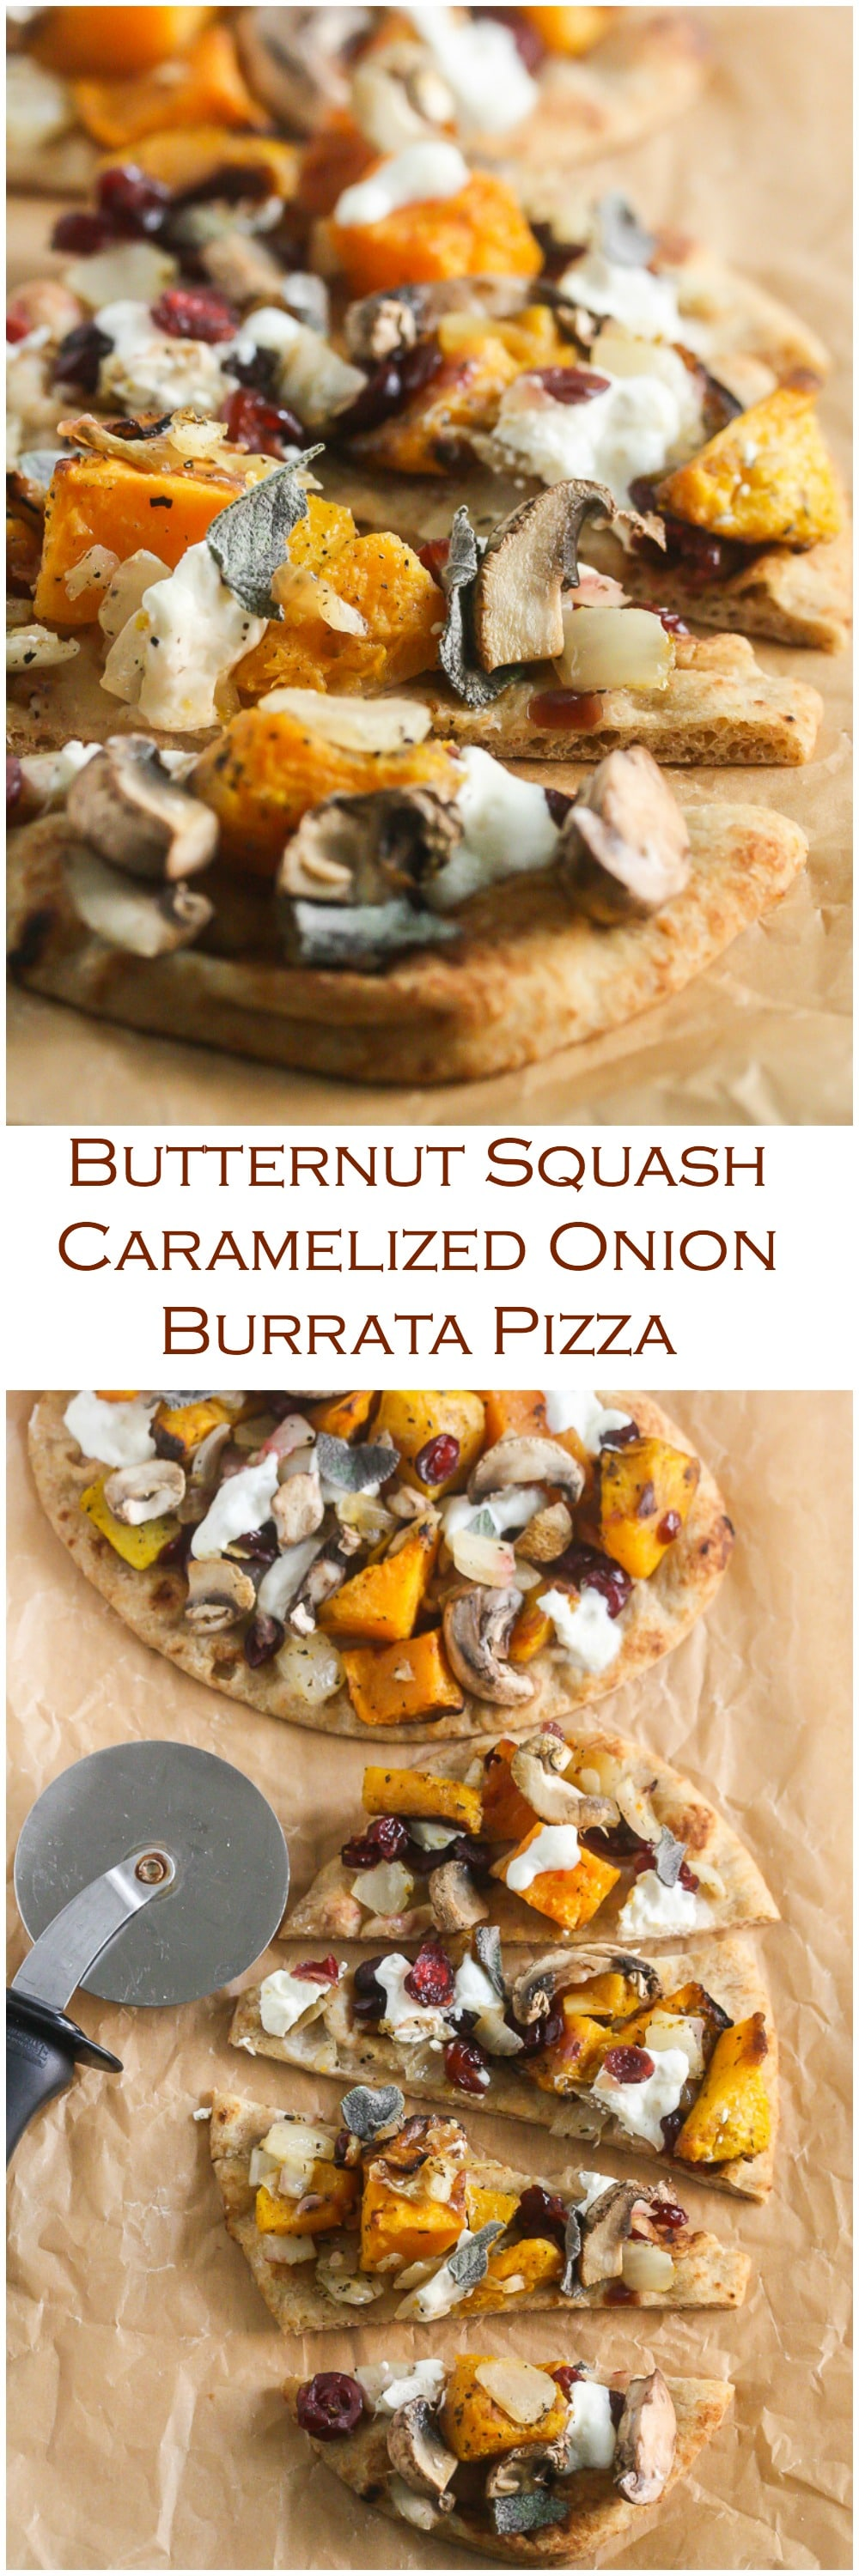 Butternut Squash Caramelized Onion Burrata Pizza from Lauren Kelly Nutrition